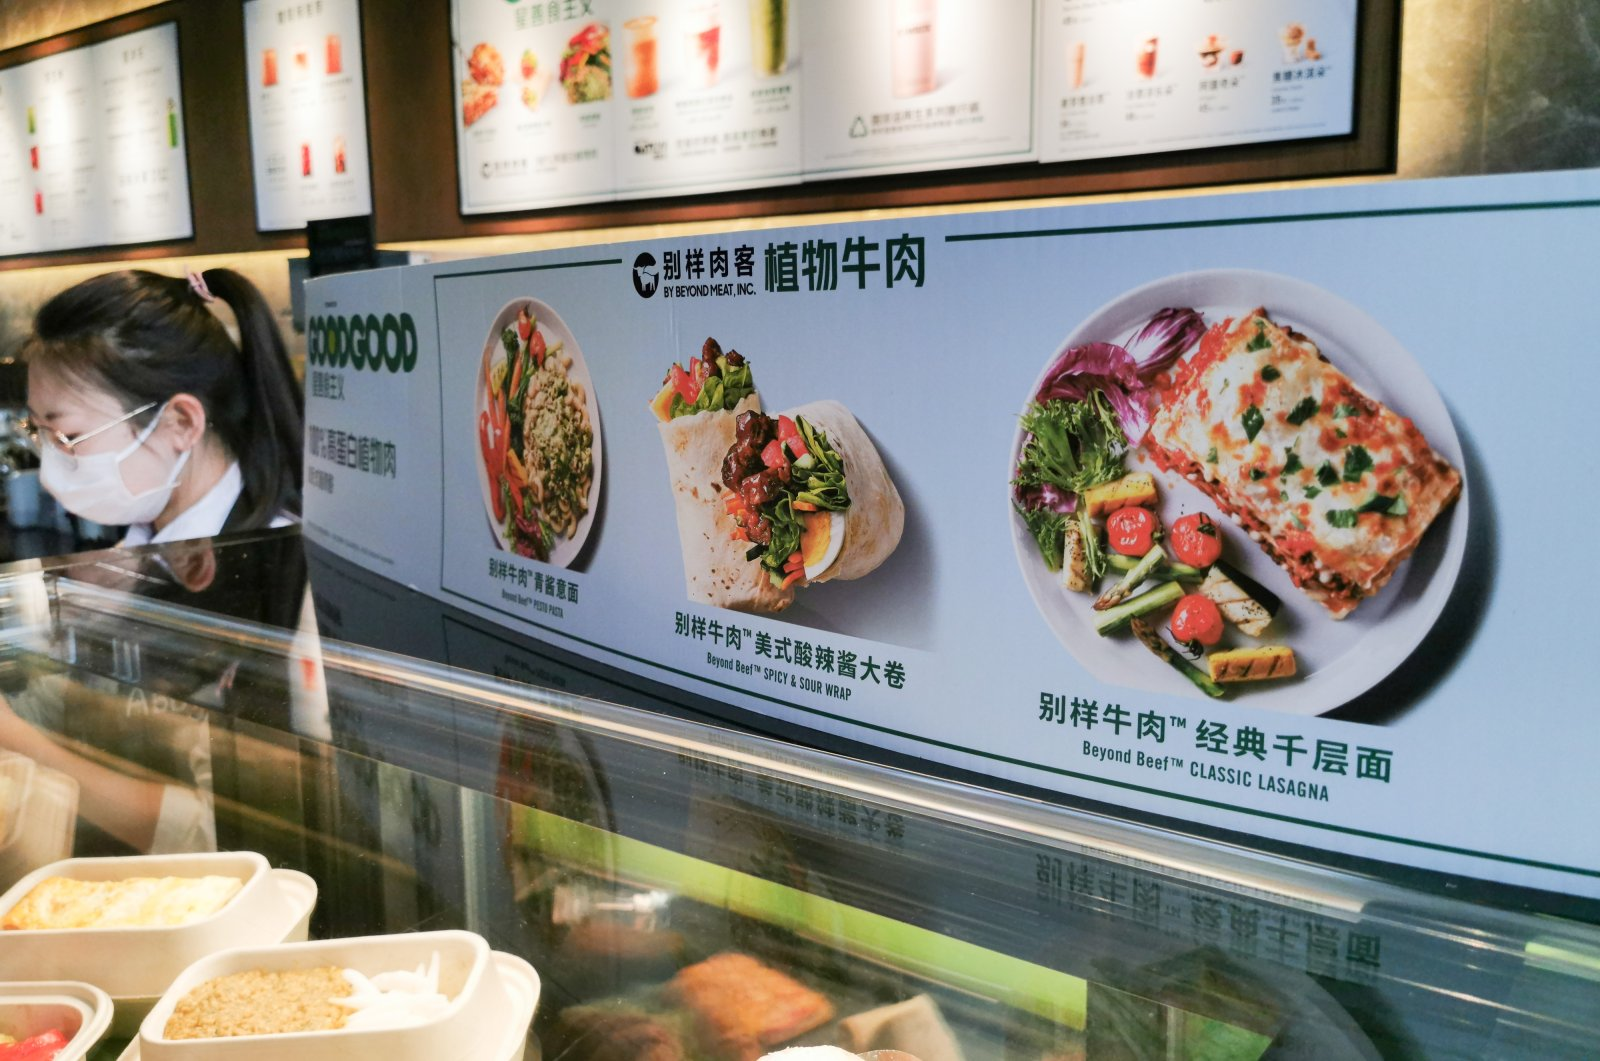 Products made of Beyond Meat, a kind of plant-based meat, make their debut on a menu of Starbucks, Shanghai, China, April 22, 2020. (Reuters Photo)